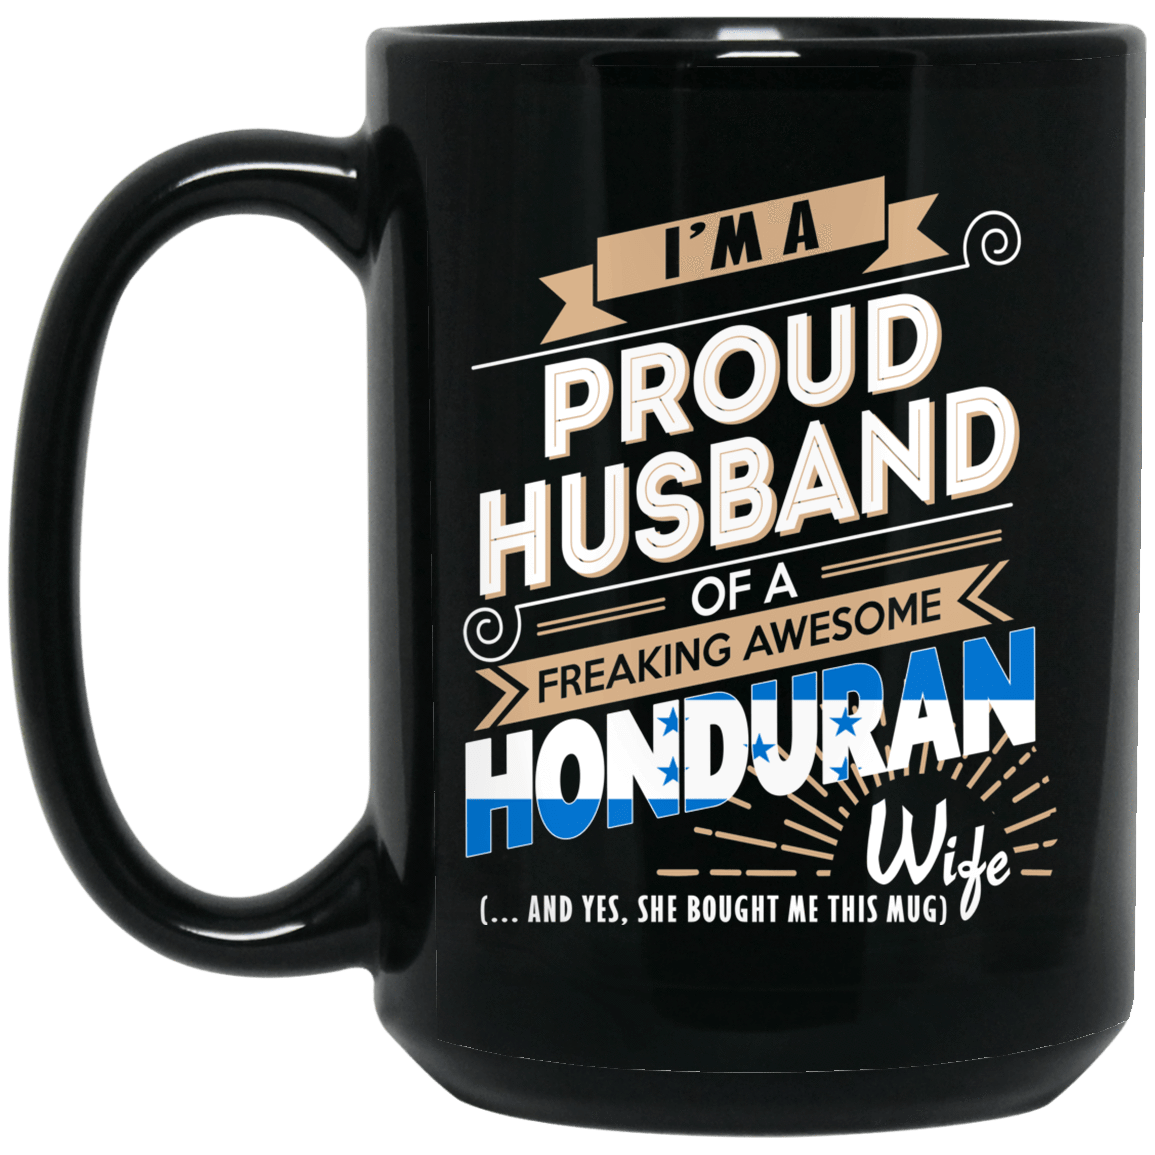 Proud Husband Of A Freaking Awesome Honduran Wife Mug 1066-10182-72136522-49311 - Tee Ript